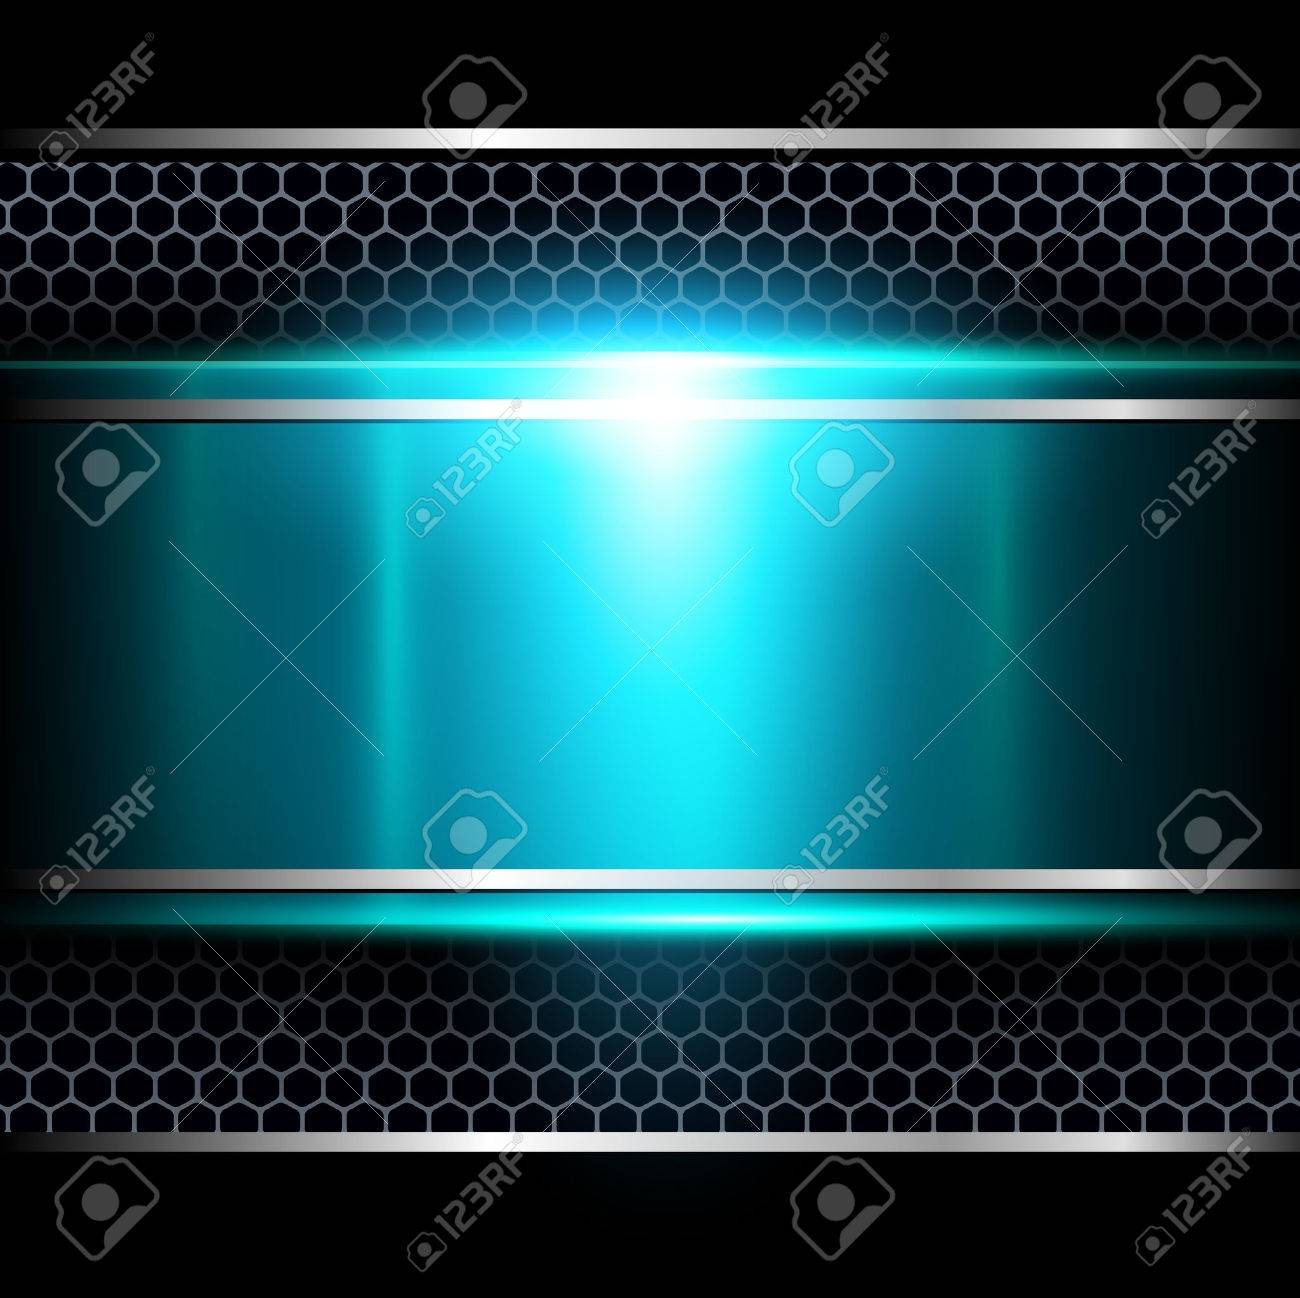 Background abstract blue metallic - 41550357